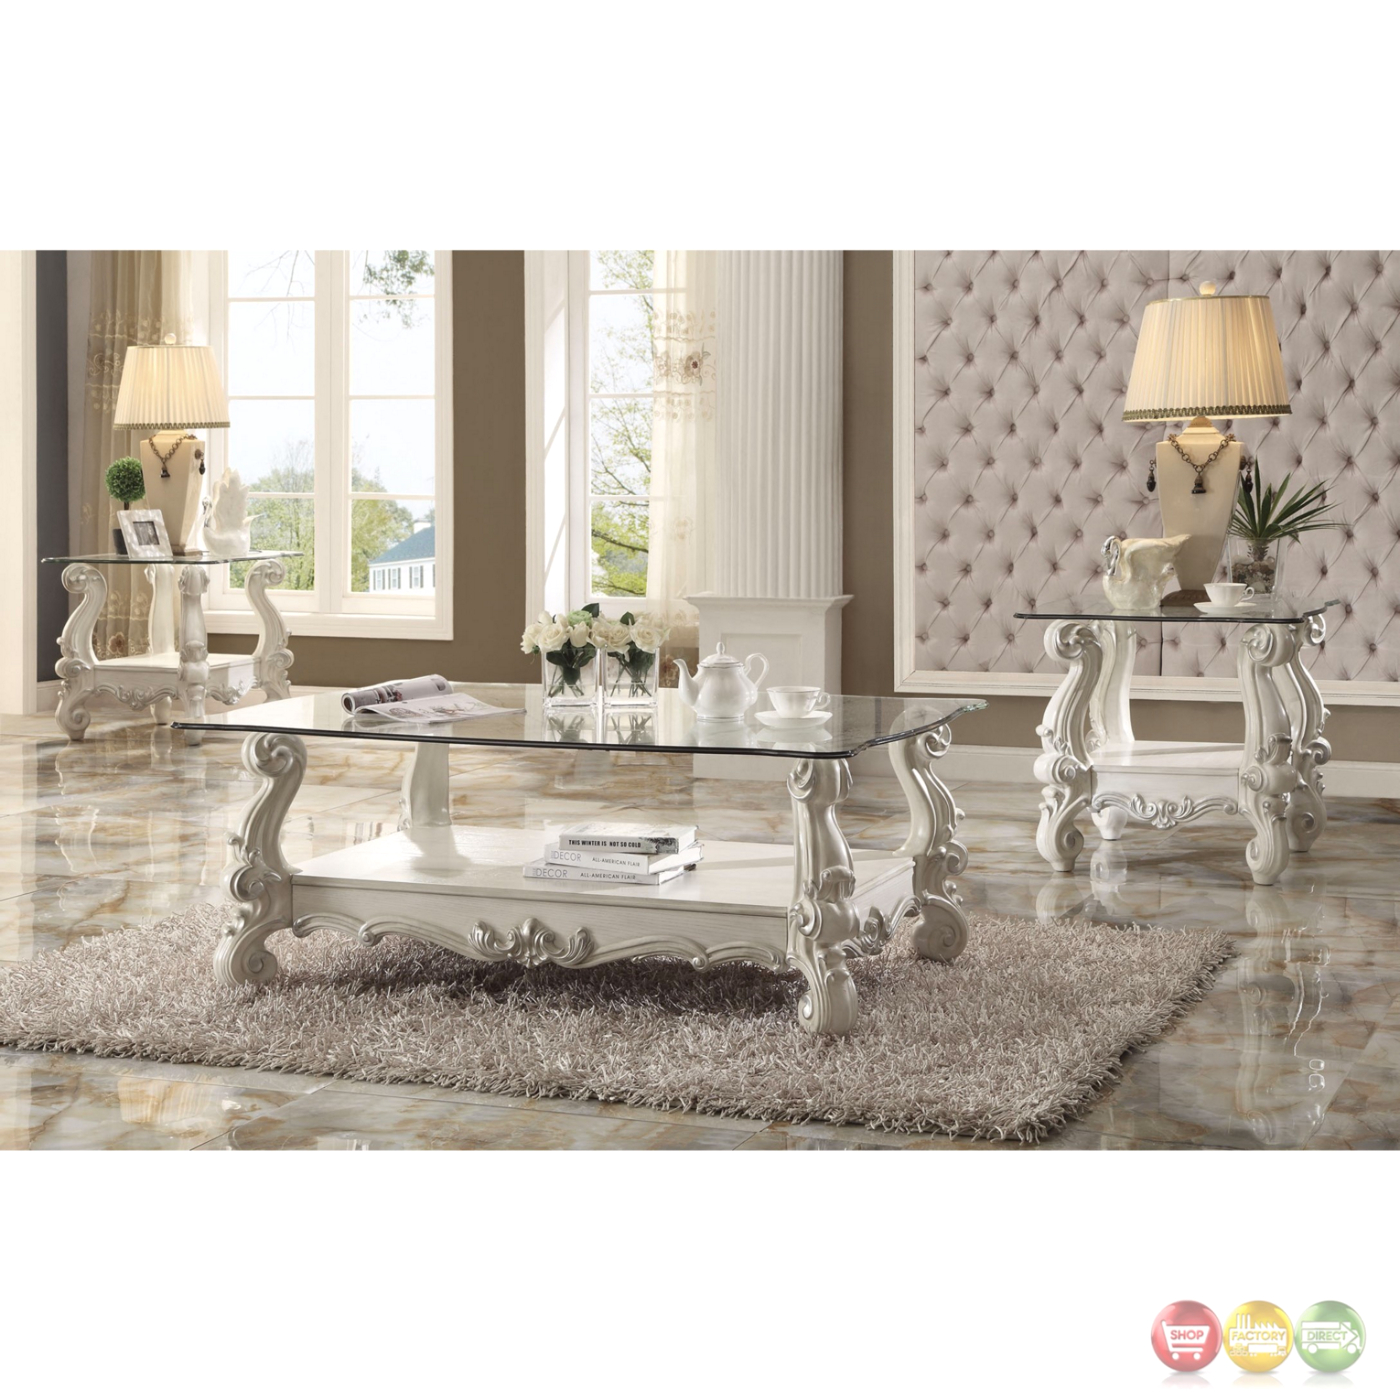 Versailles Square Coffee Table: Versailles Glass Top Ornate End Table In Vintage Bone White